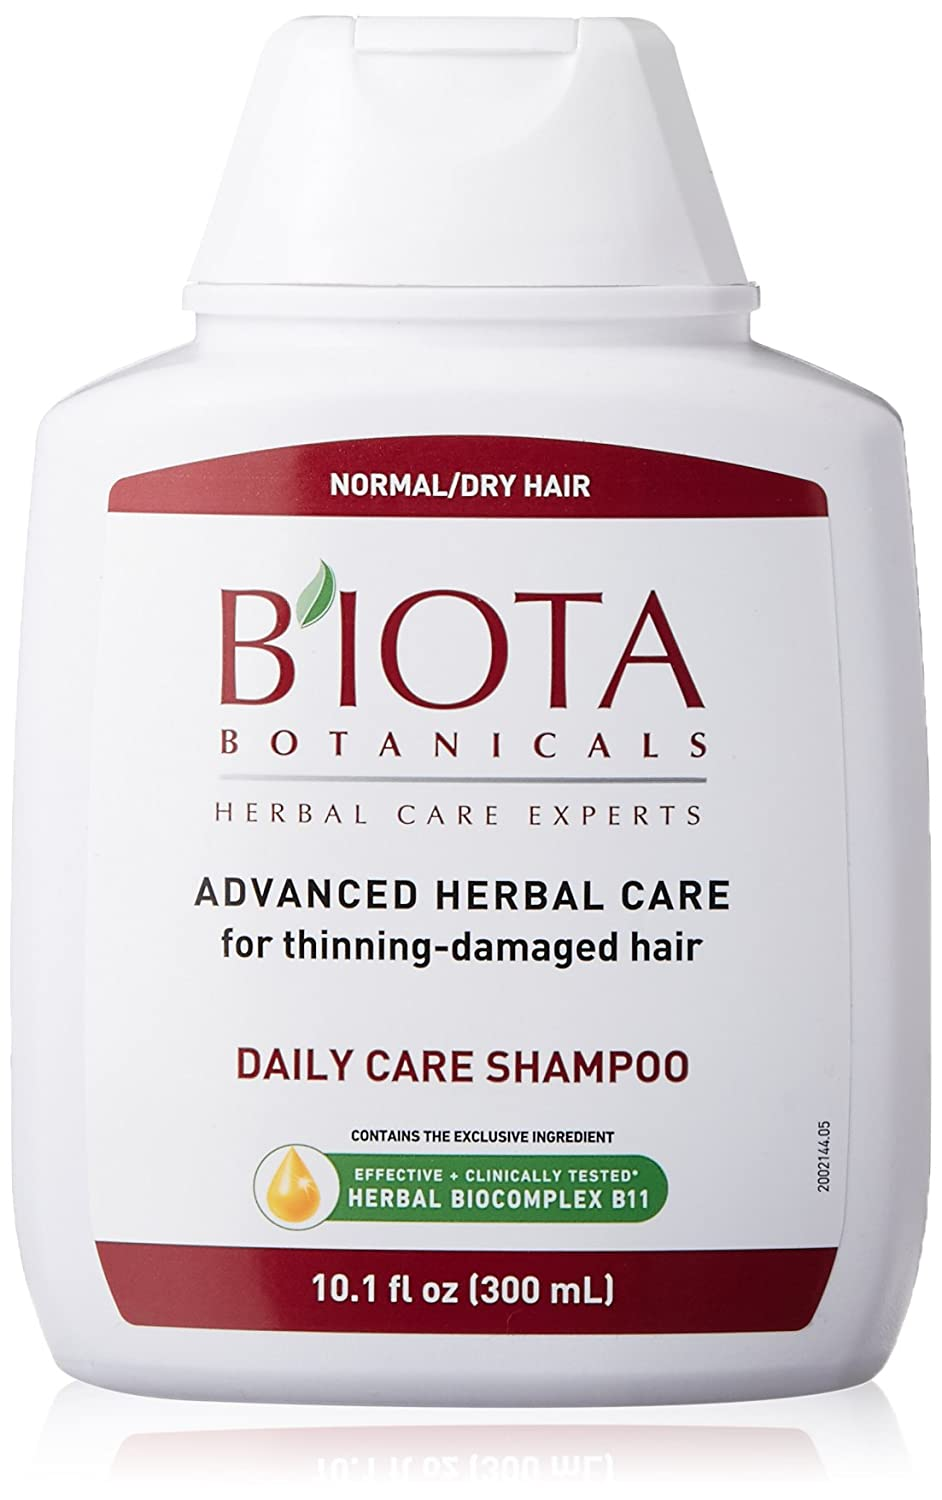 Biota Botanicals Daily Care Shampoo 300 Milliliters Bio-9485